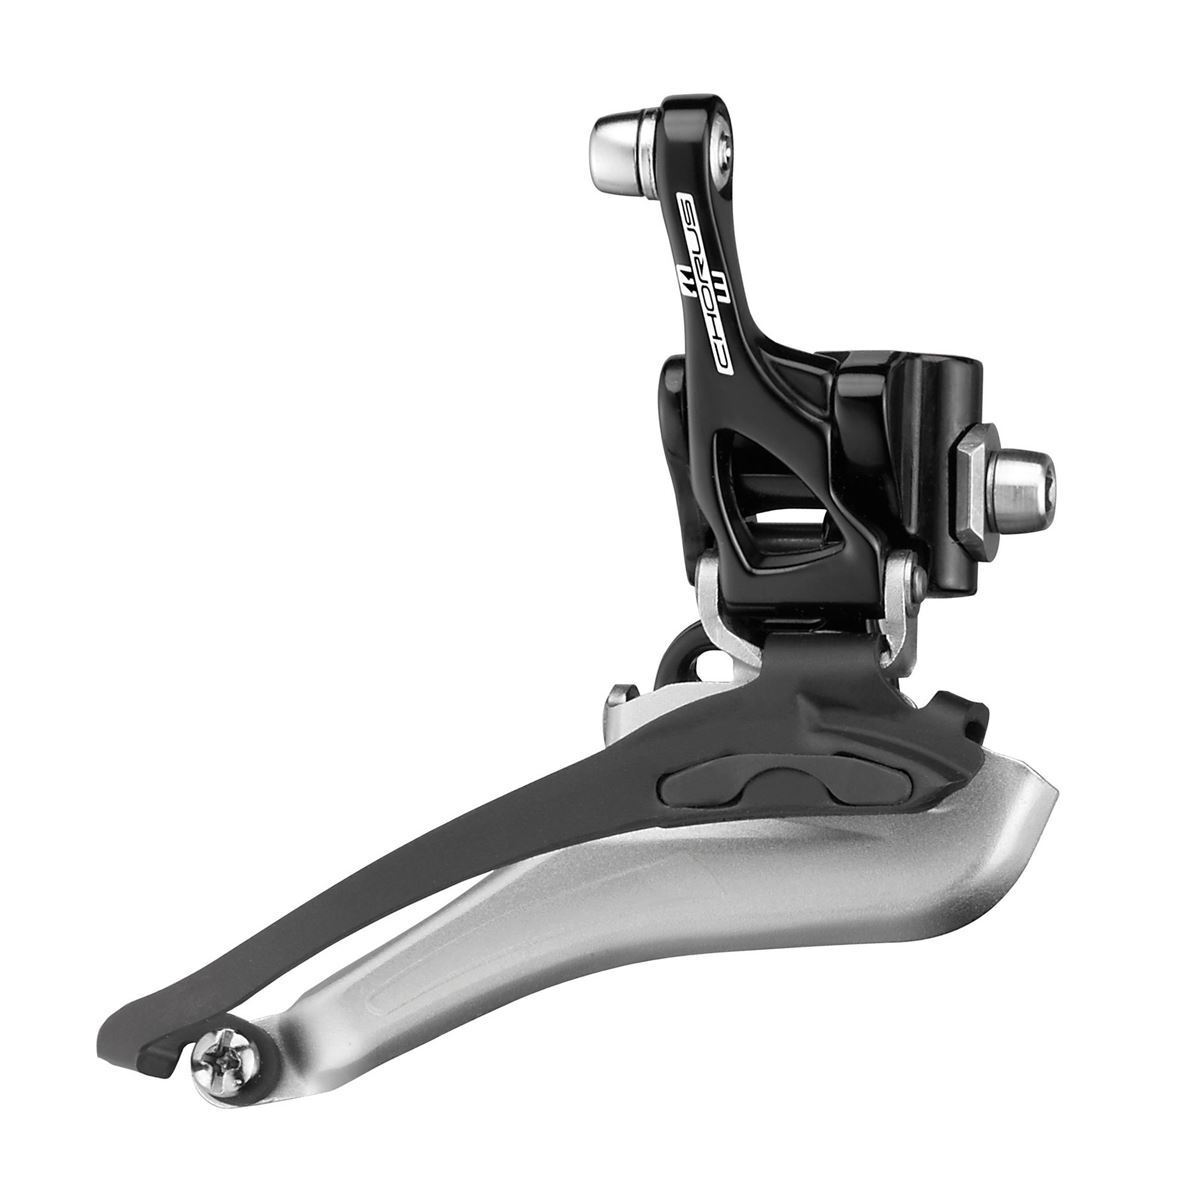 Campagnolo Chorus  Front Derailleur Braze-On 11 Speed Compact And Standared  100% fit guarantee